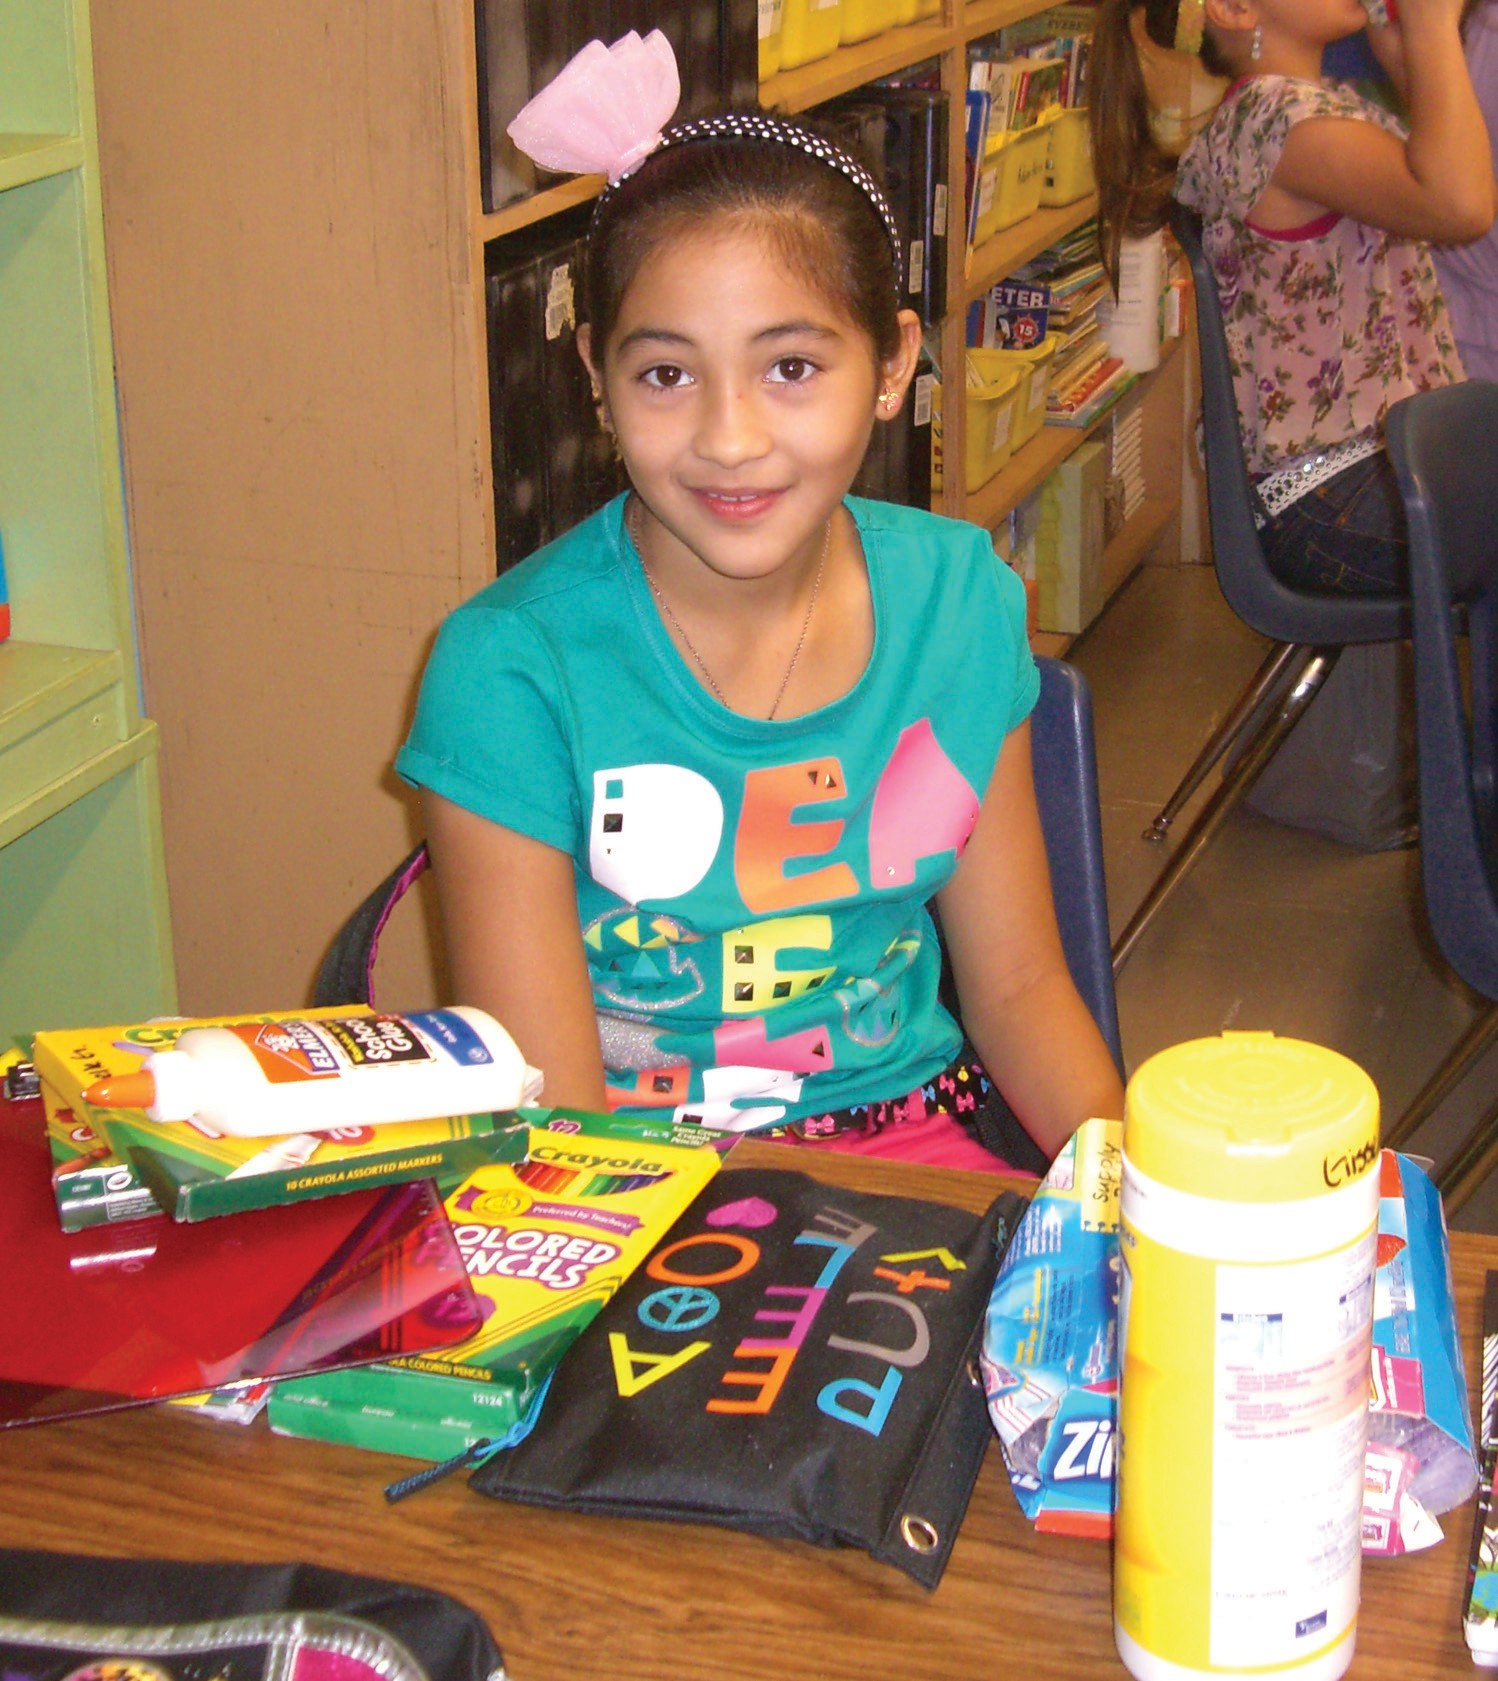 Gisselle Garcia, a fourth grader at Jourdanton Elementary School, takes out her school supplies to prepare for the new school year. Classes started throughout the Brush Country on Aug. 27. Garcia is a student in Ms. Marylou Chandler's class.